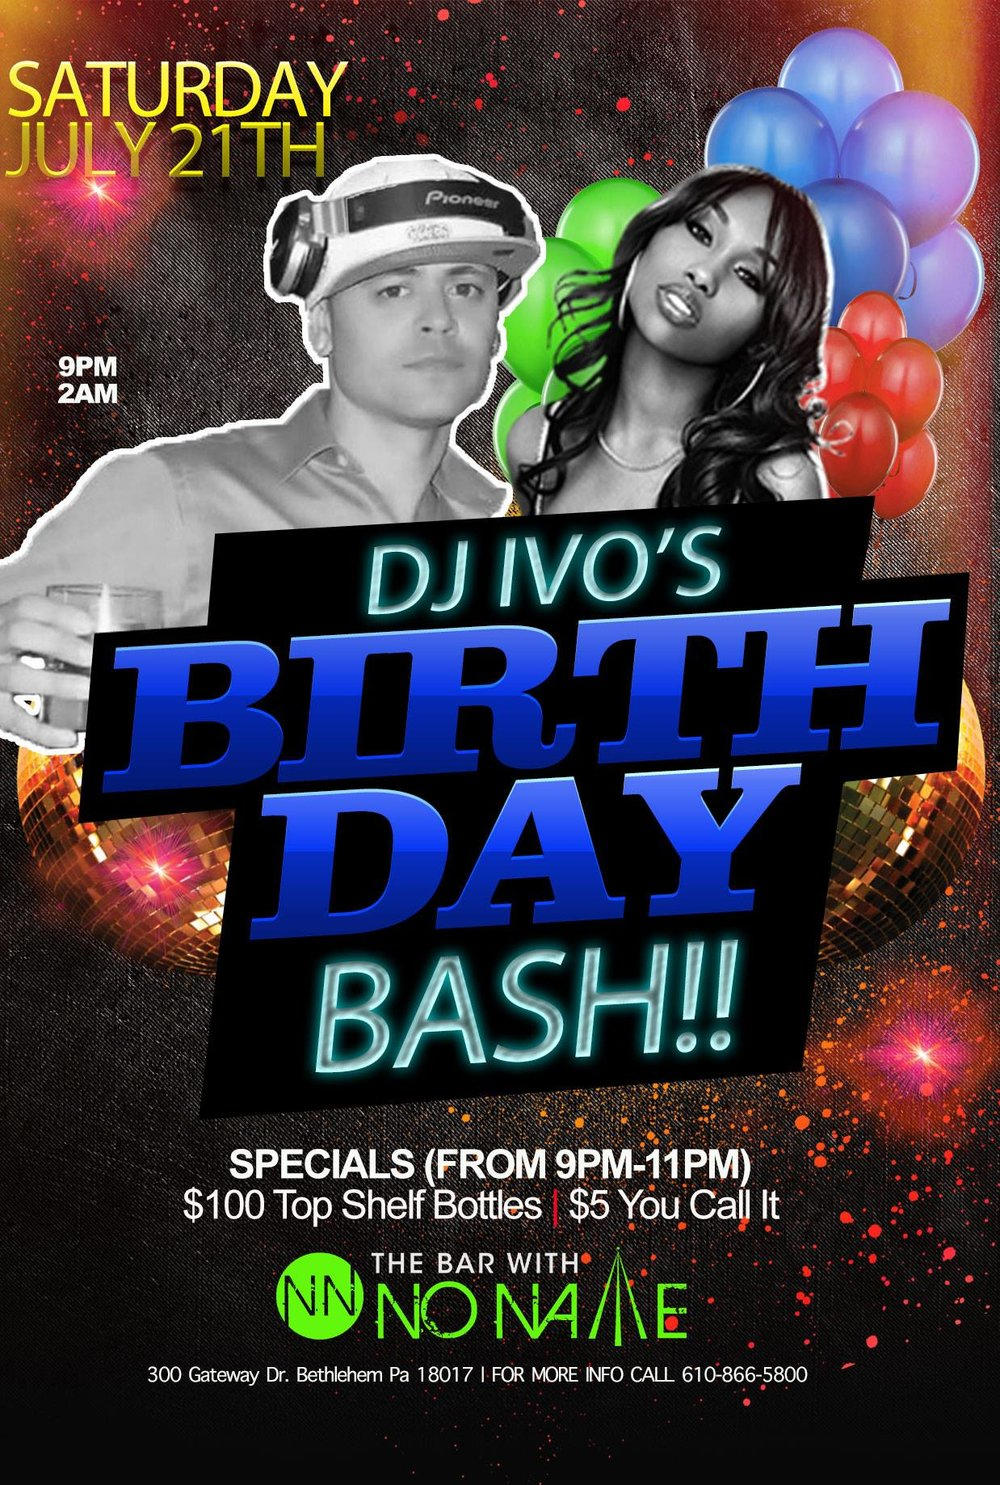 JD IVO's Birthday Bash